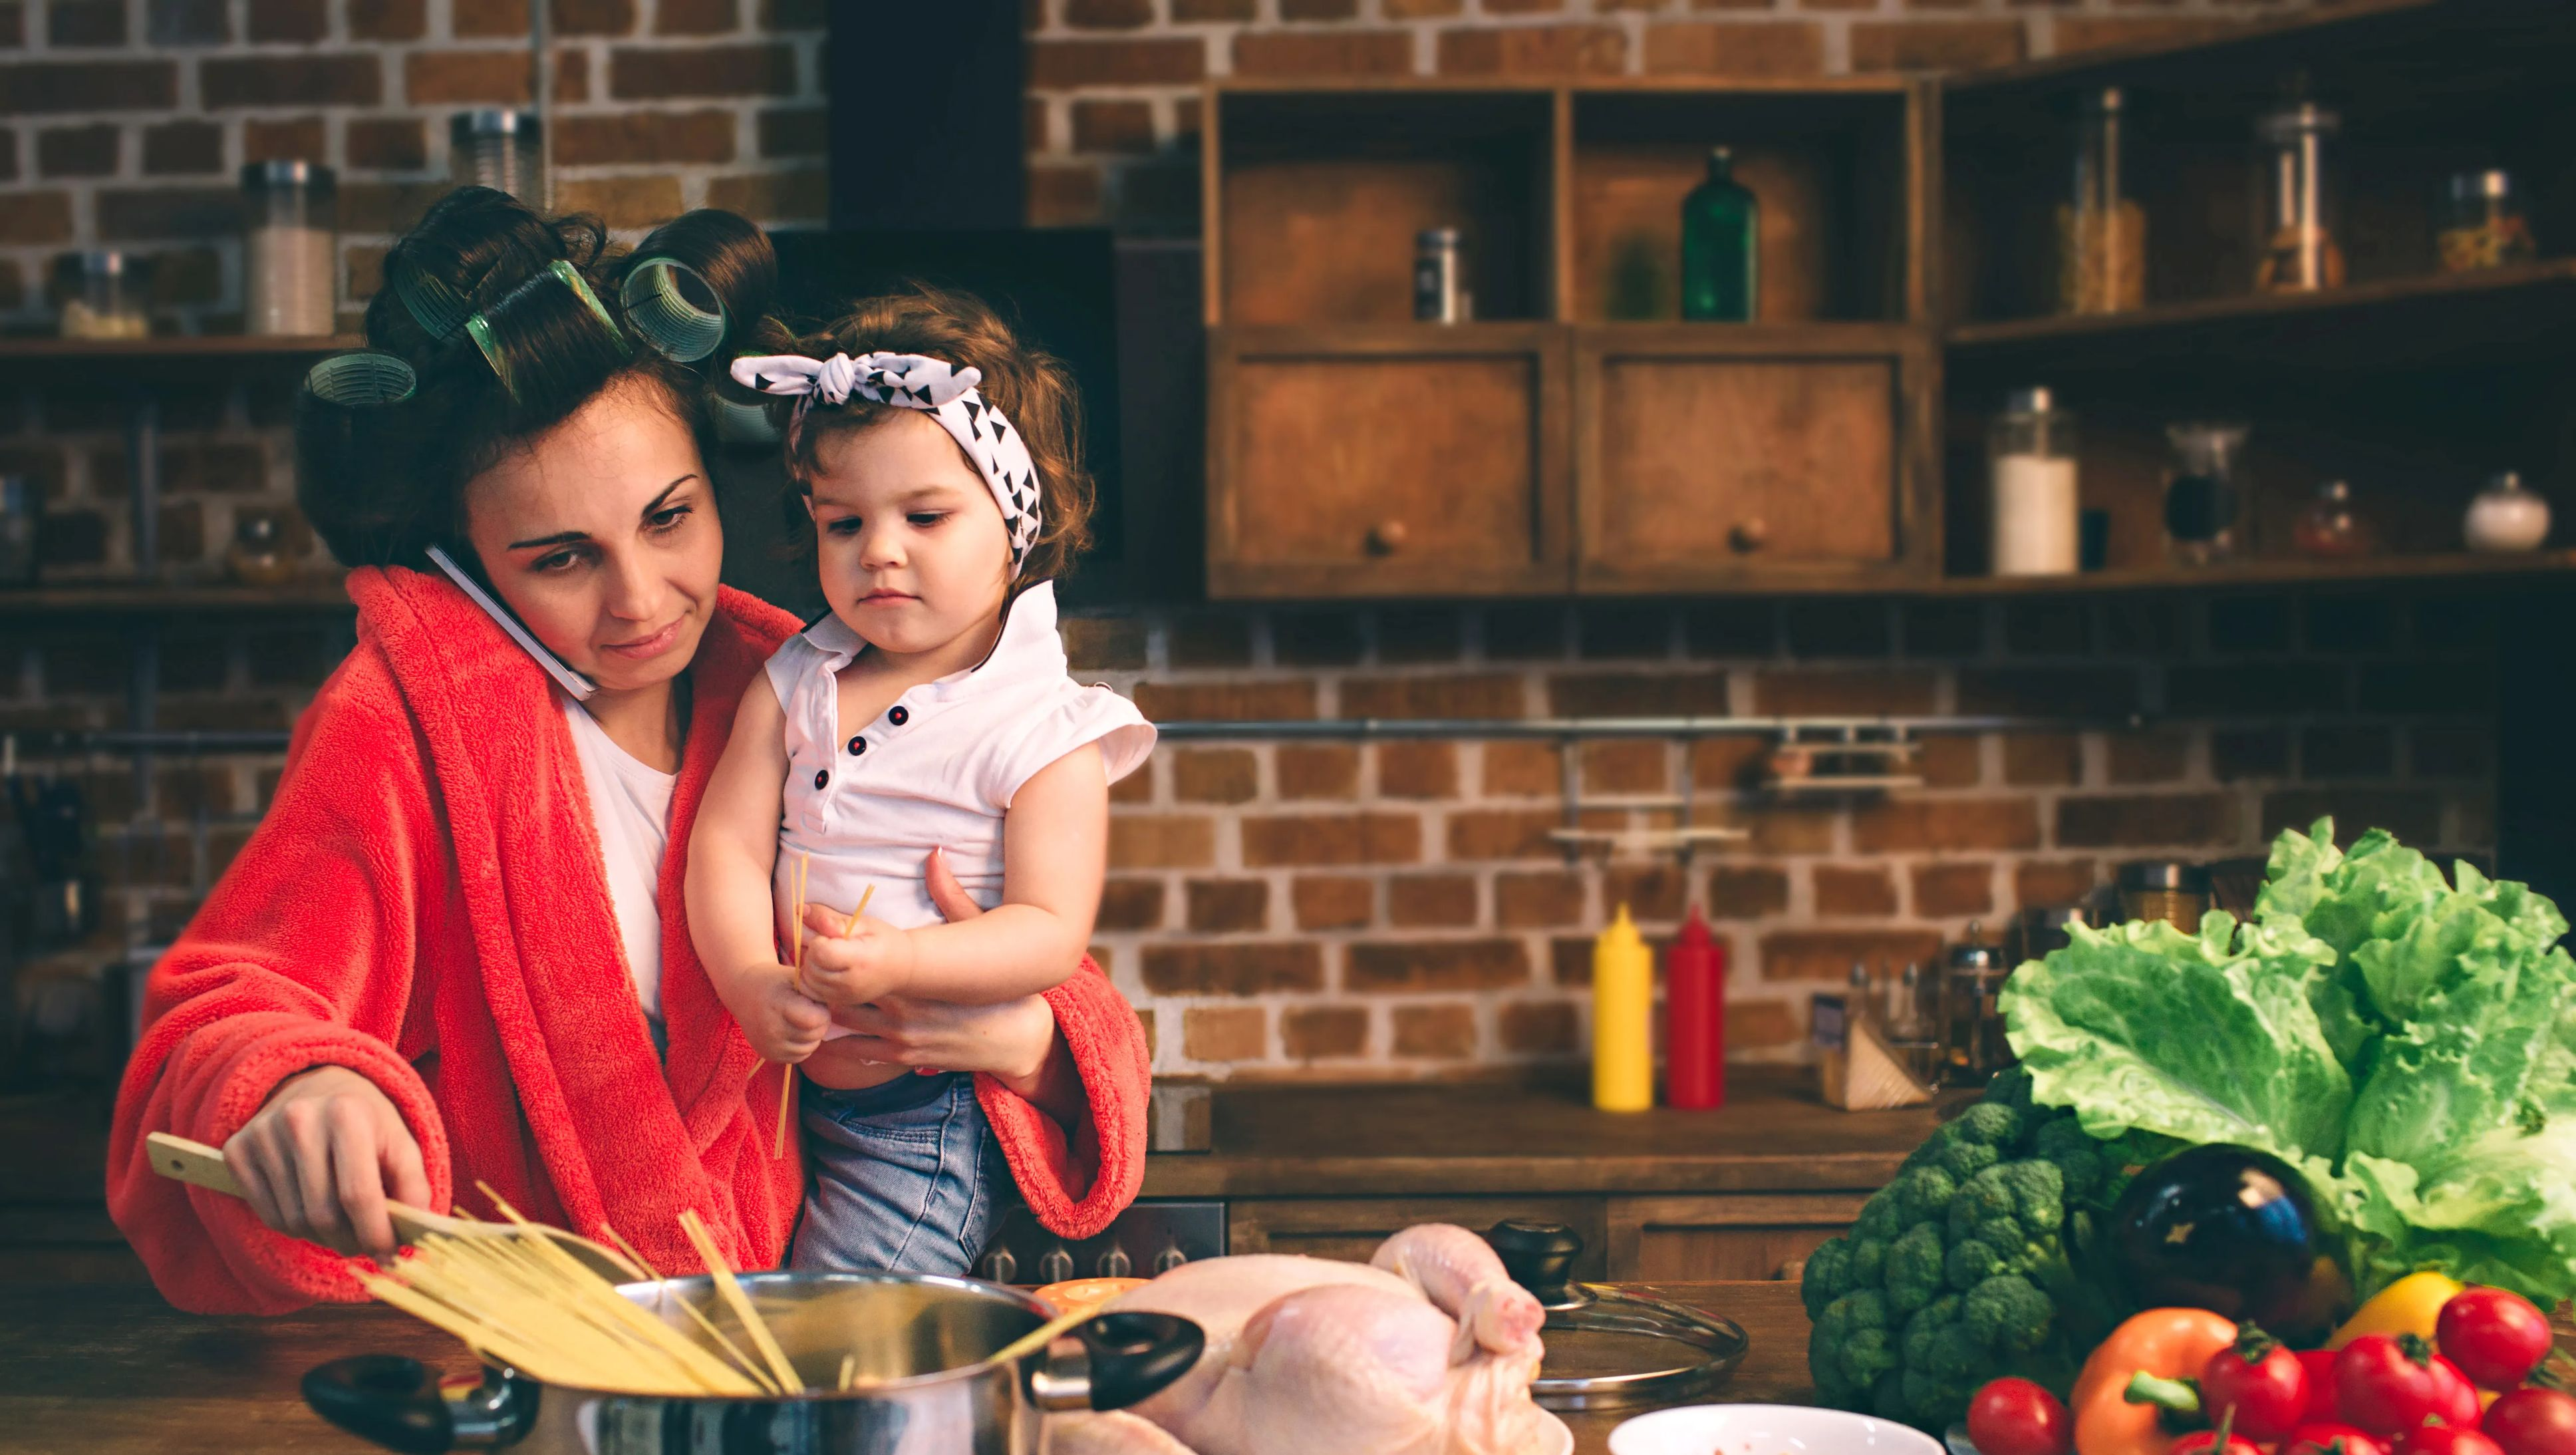 Busy mom cooking dinner while holding a baby